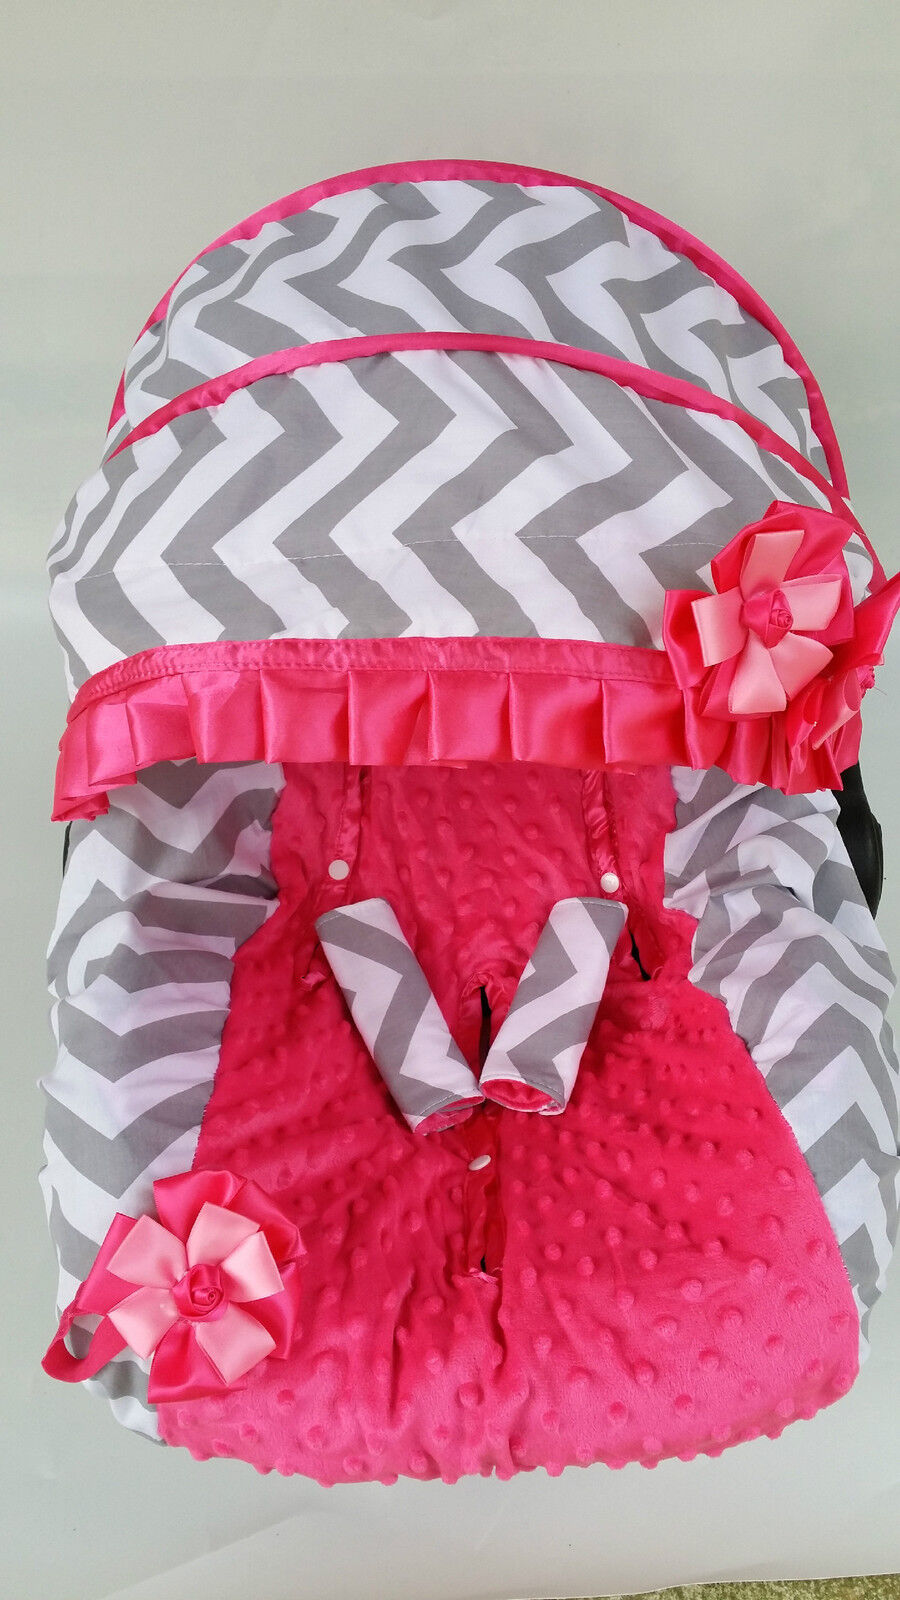 baby car seat cover canopy cover blanket set fit most infant seat h pink ebay. Black Bedroom Furniture Sets. Home Design Ideas